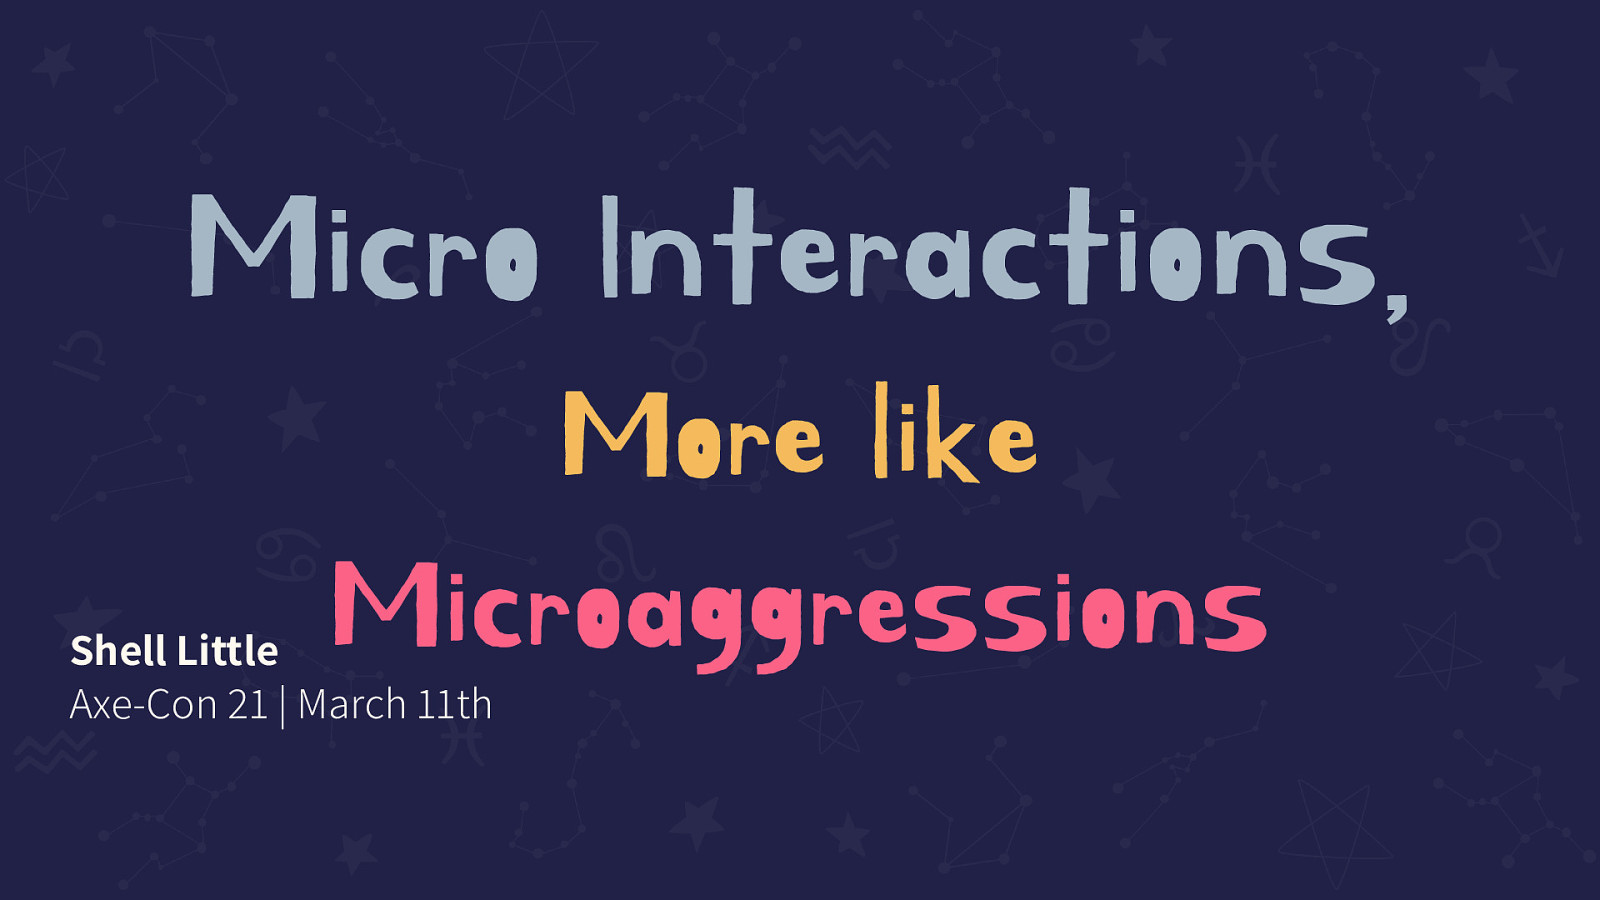 Micro Interactions,  More like Microaggressions